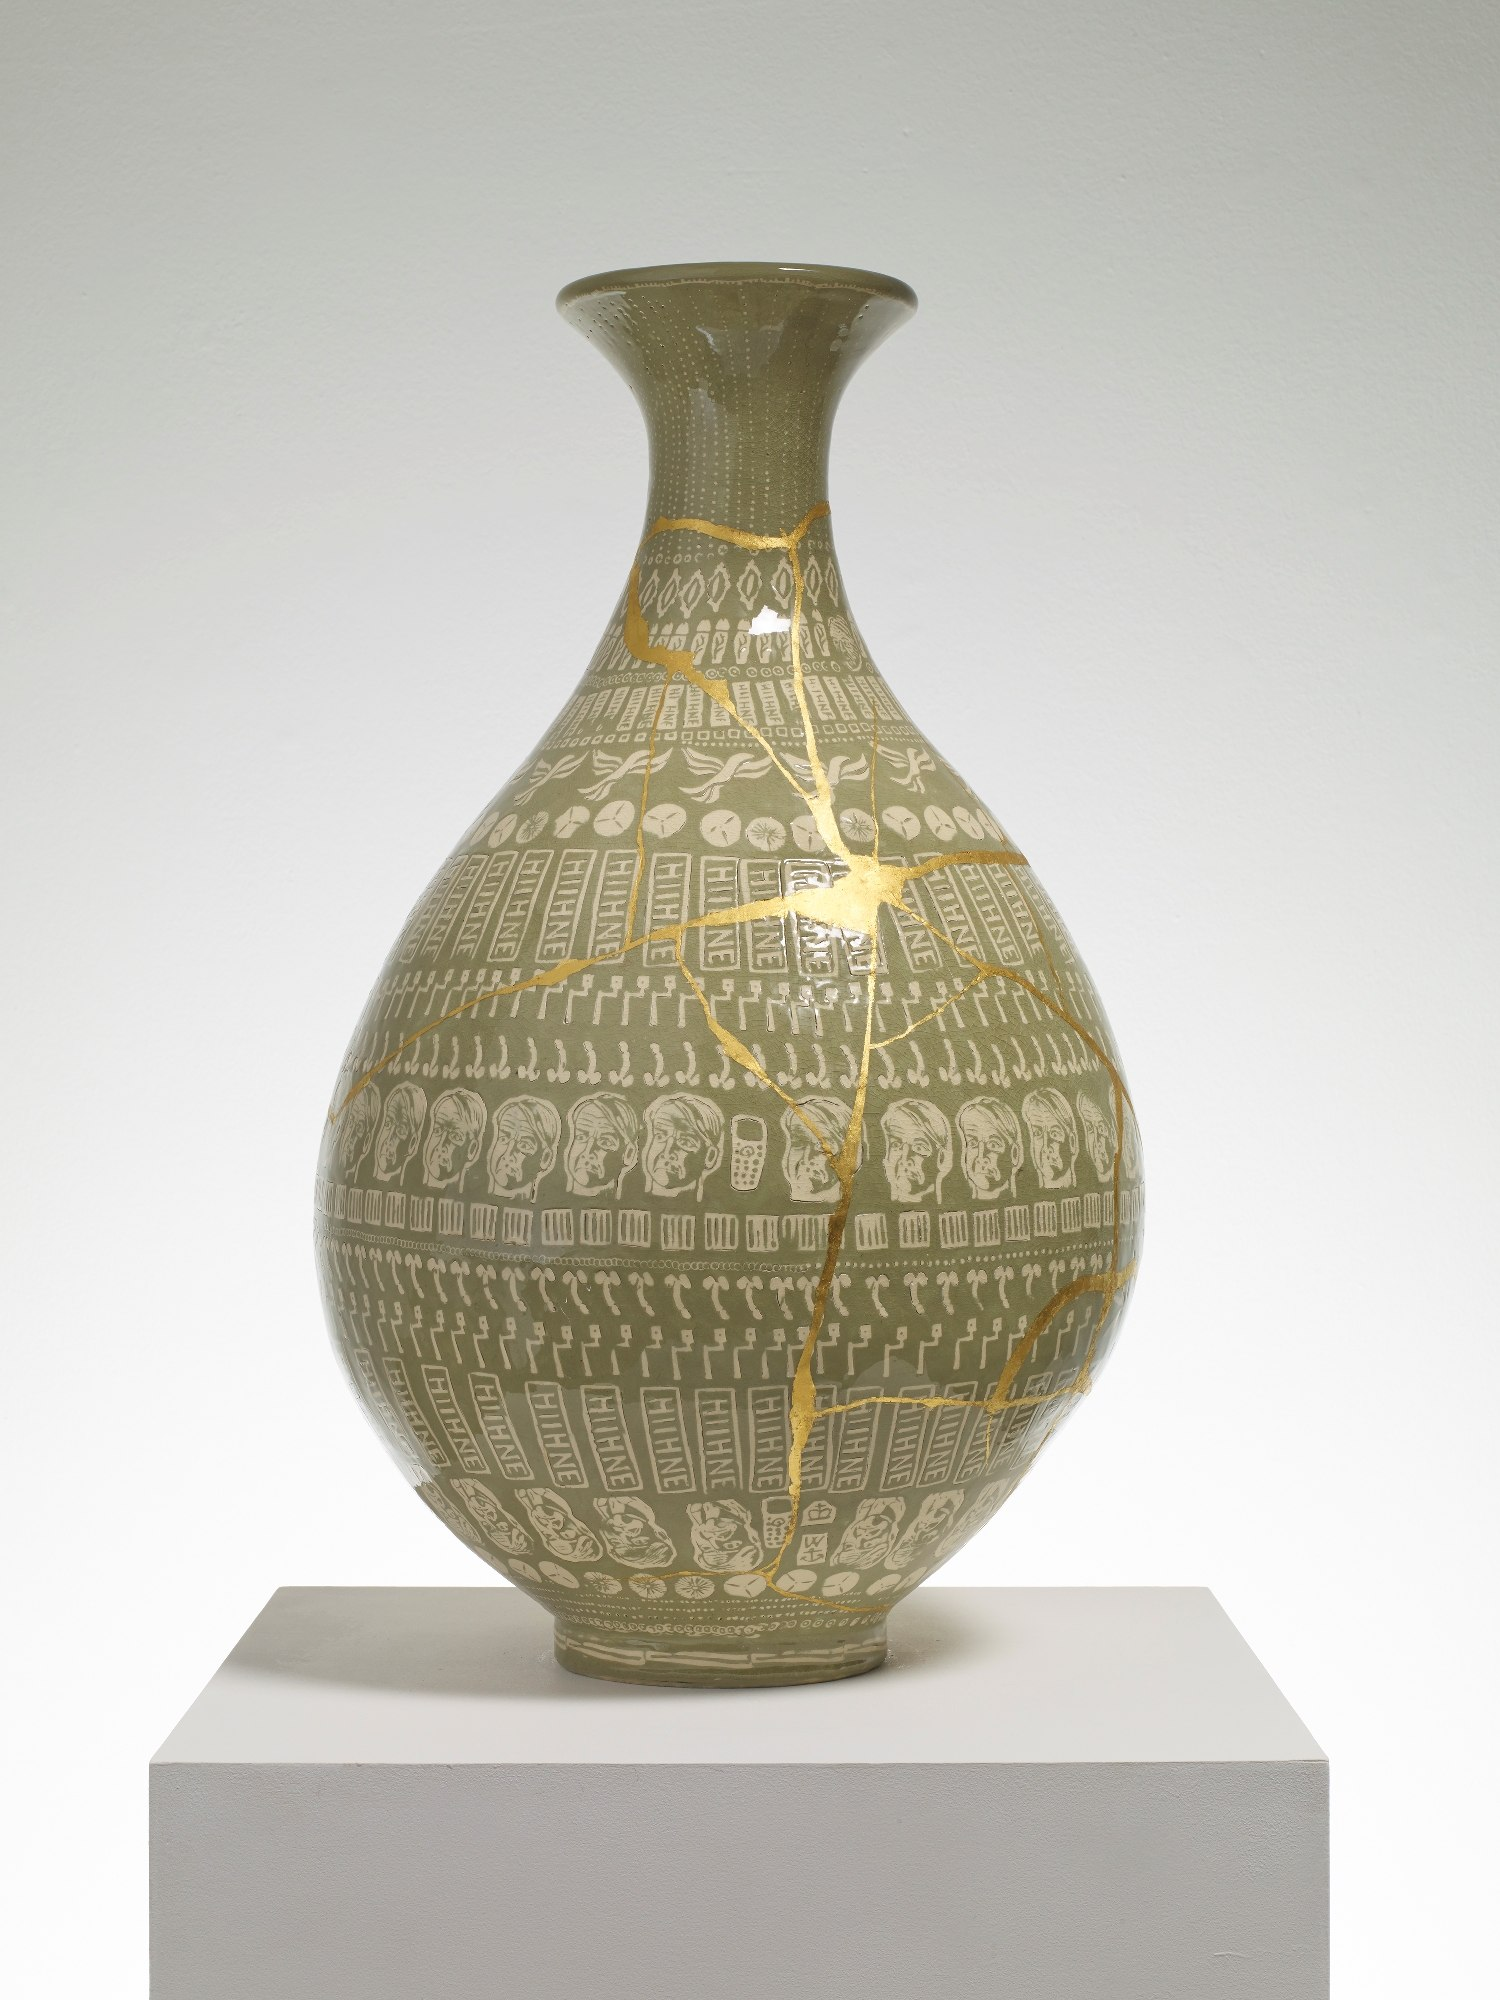 The Huhne Vase, 2014. Courtesy of the artist and Victoria Miro, London